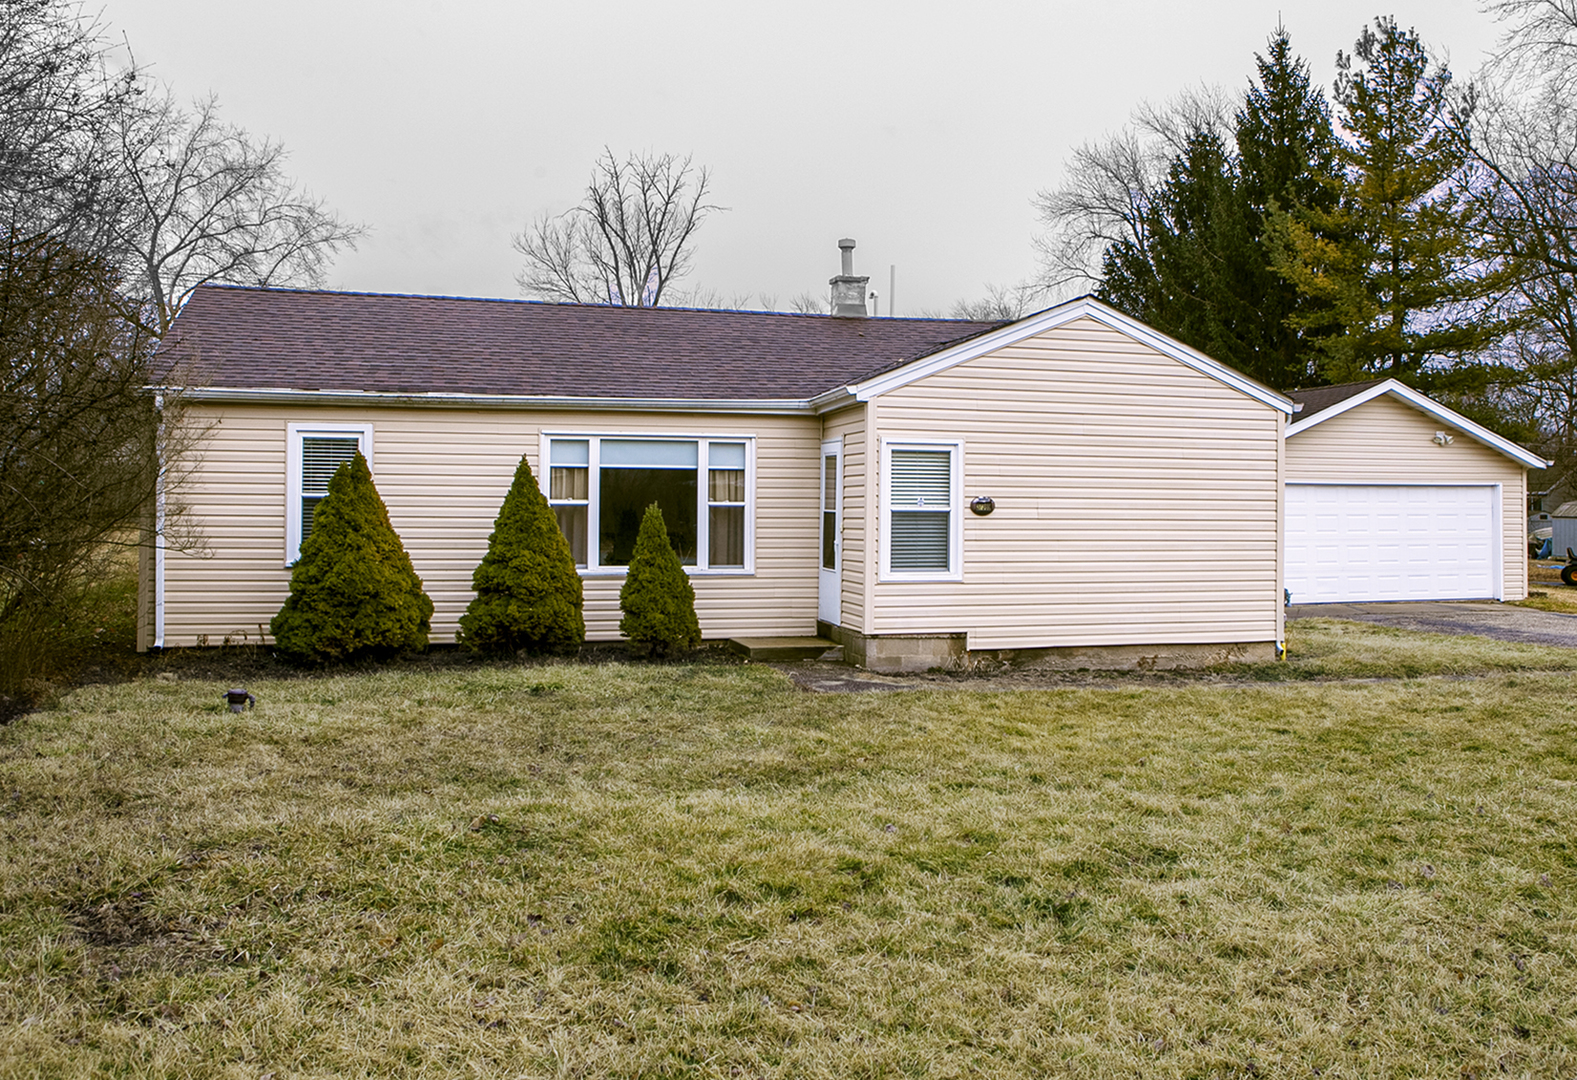 37369 North Loretto Avenue, Lake Villa, Illinois 60046